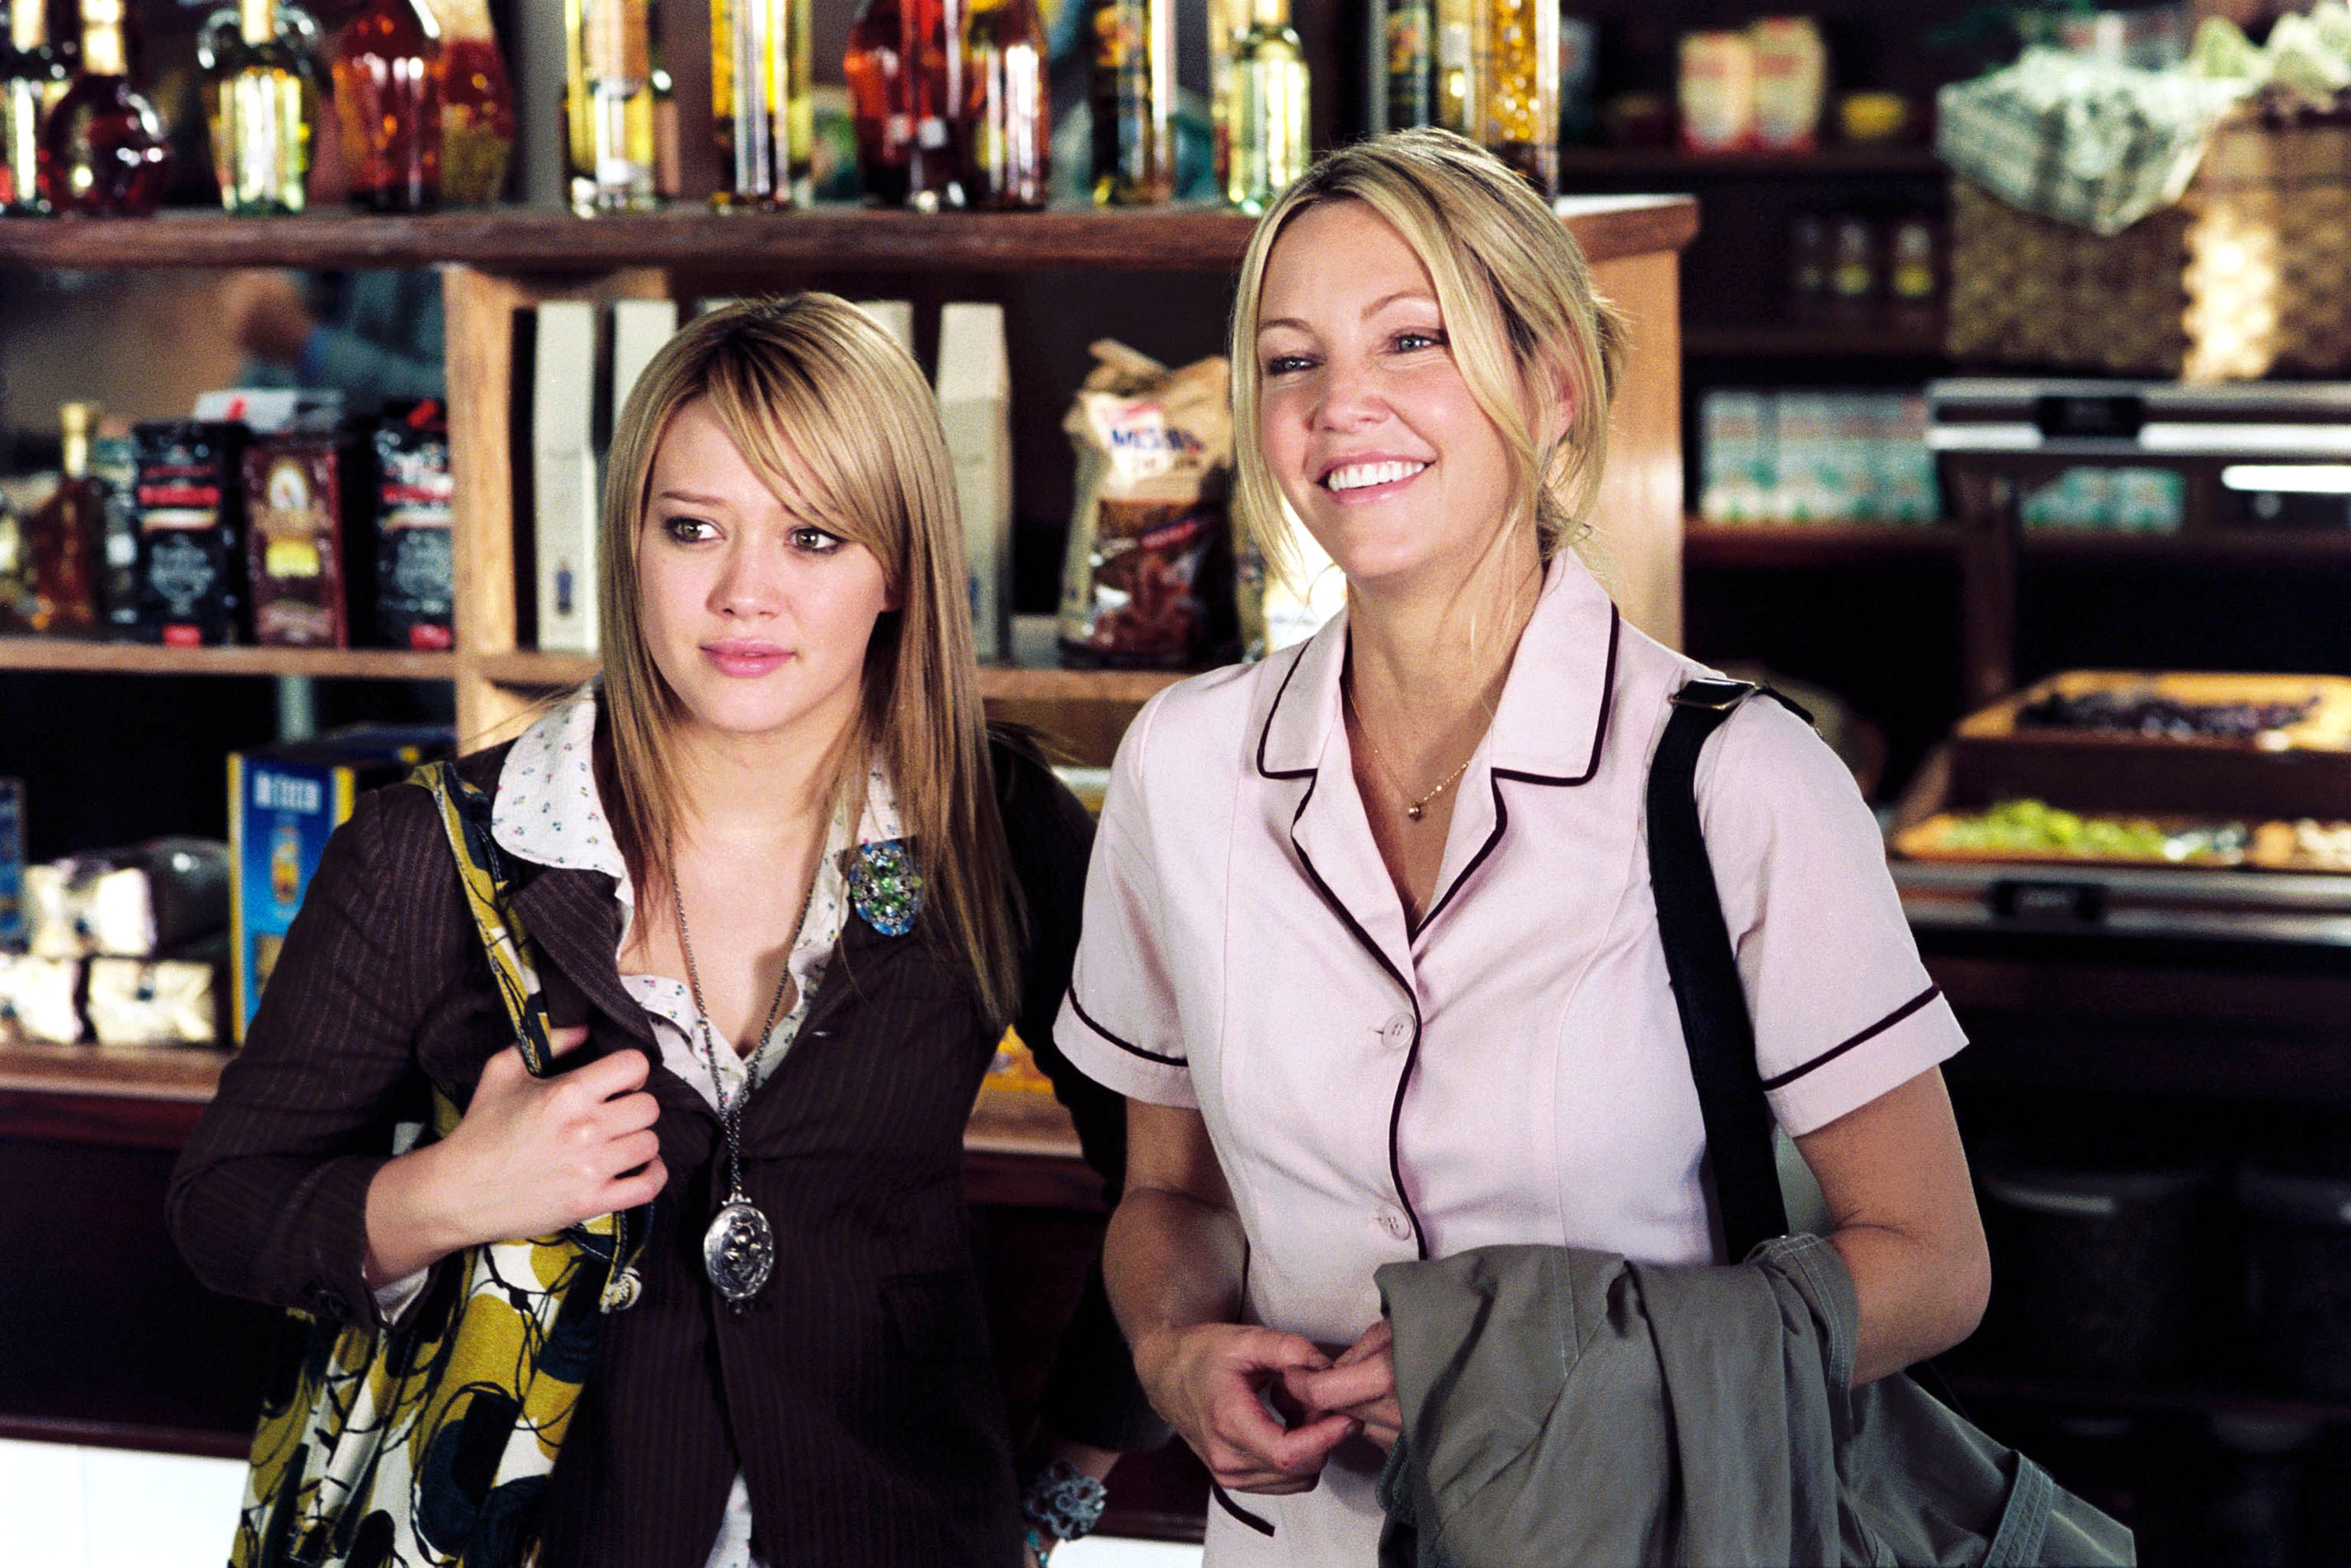 Hilary Duff and Heather Locklear in the movie the perfect man